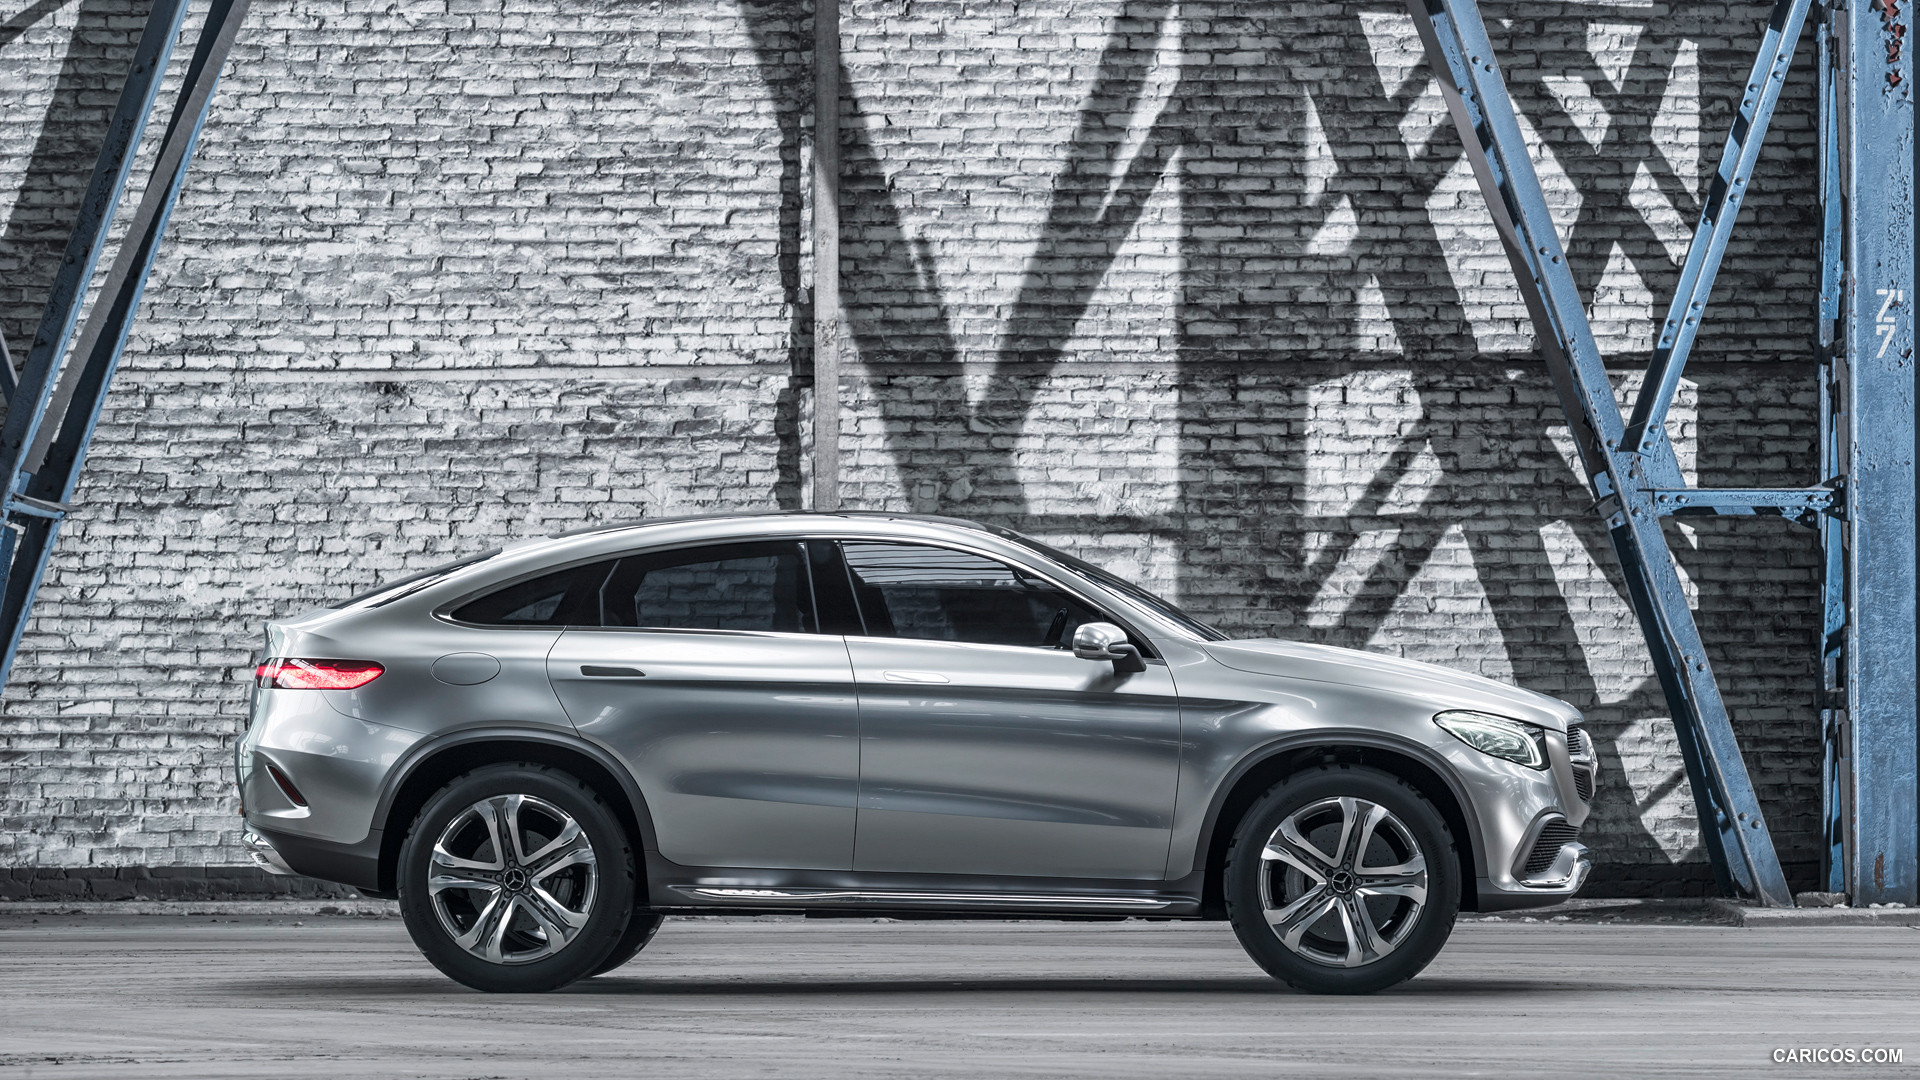 Mercedes B Class Electric >> Mercedes-Benz Coupe SUV photos - PhotoGallery with 17 pics| CarsBase.com